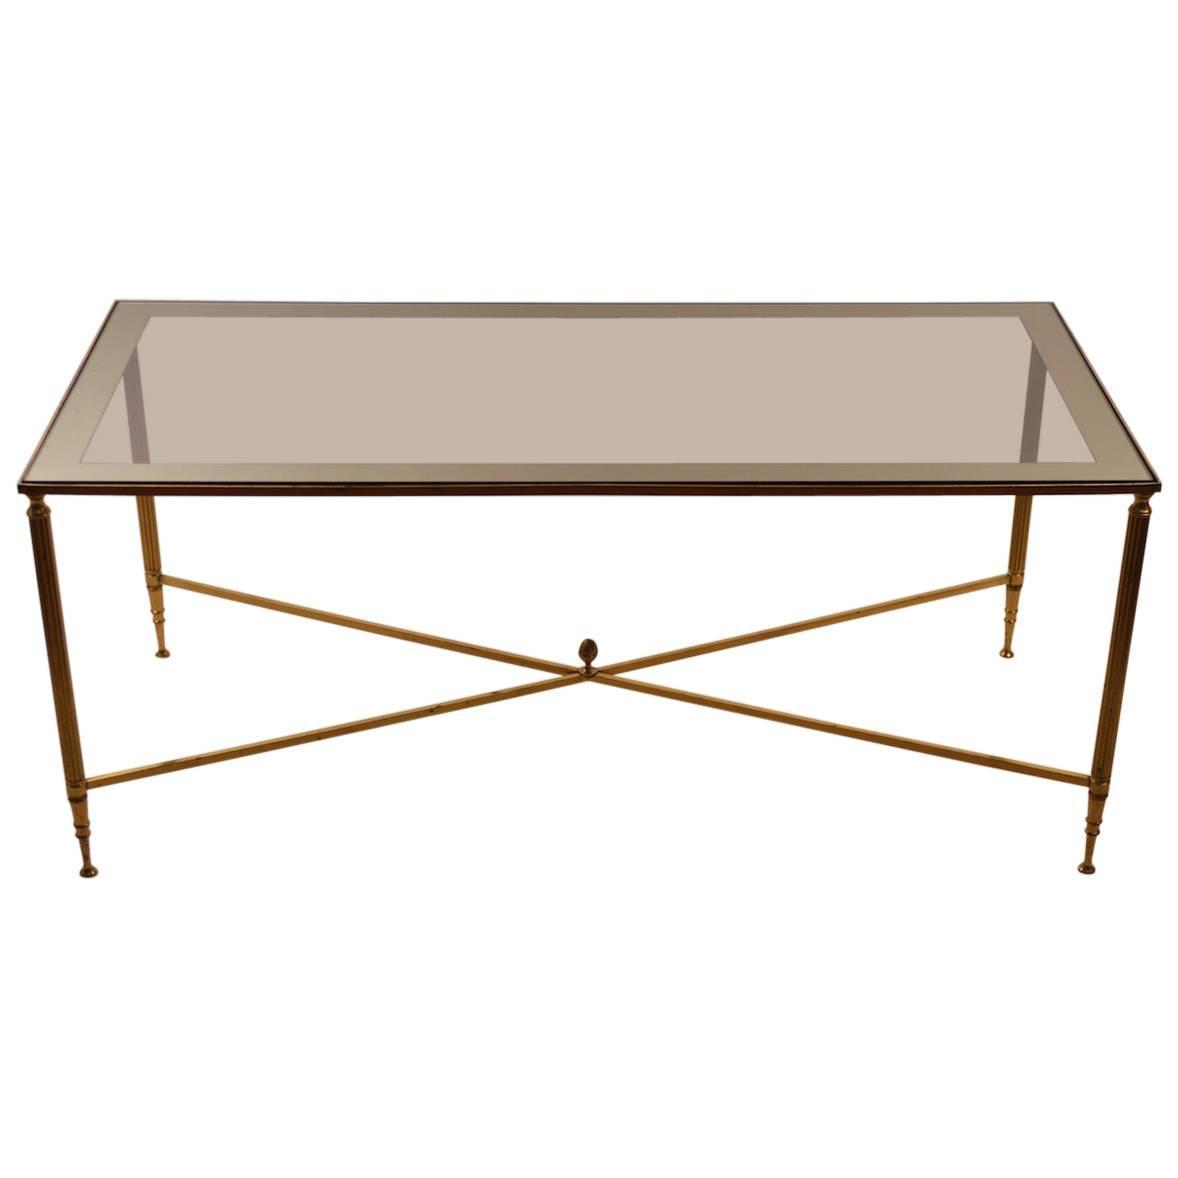 Mirror Top Brass Base Coffee Table After Maison Jansen For Sale At 1stdibs